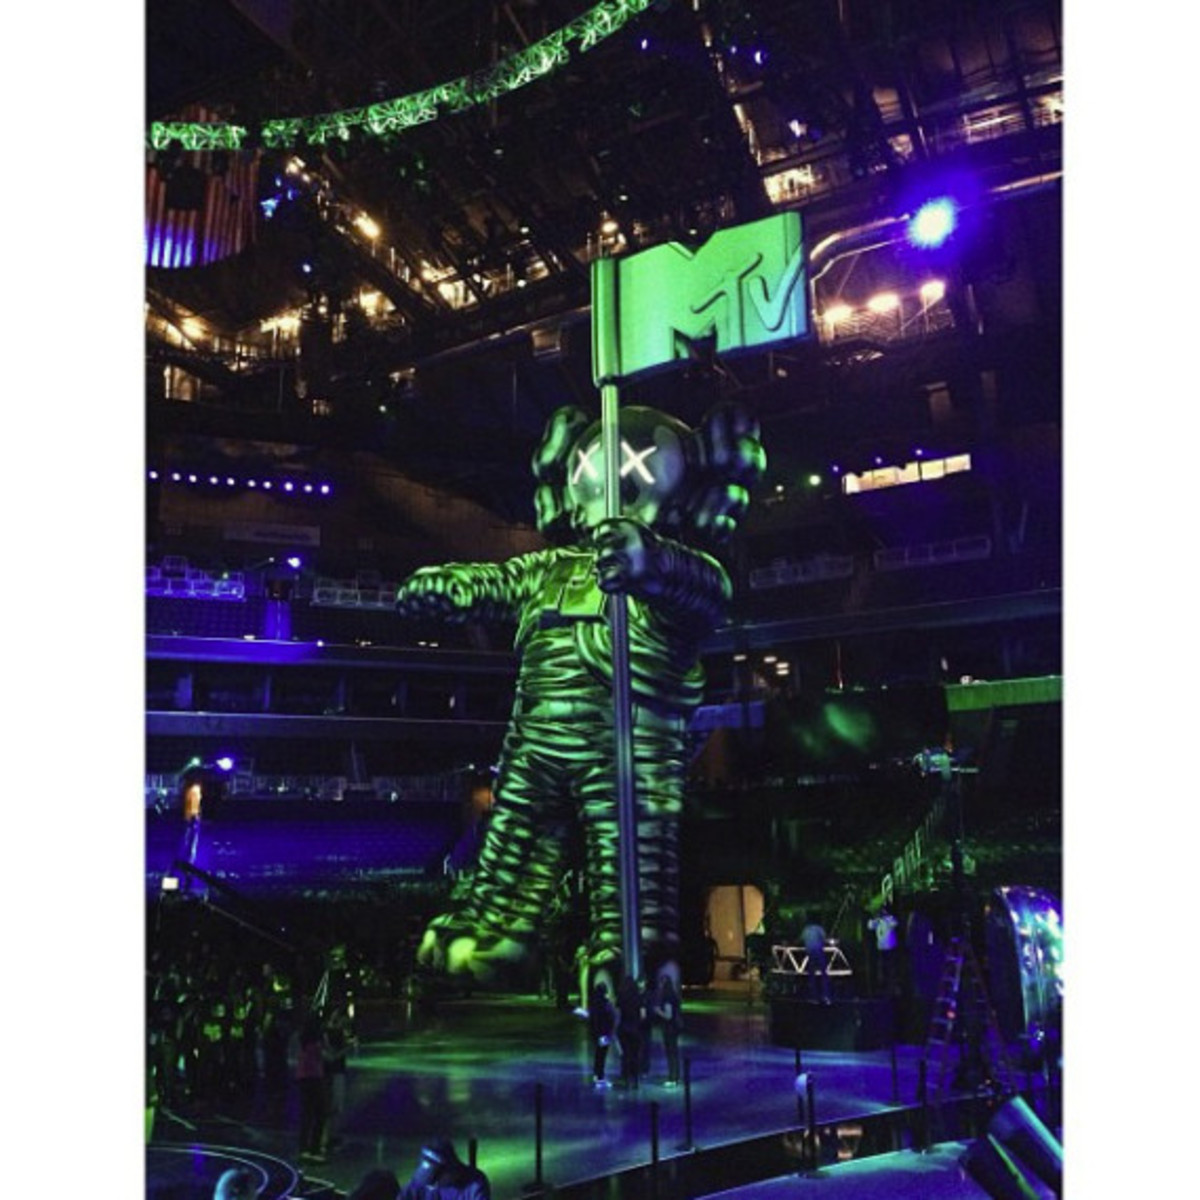 2013 MTV Video Music Awards Unveiled 60-Foot Moonman Statue by KAWS - 3